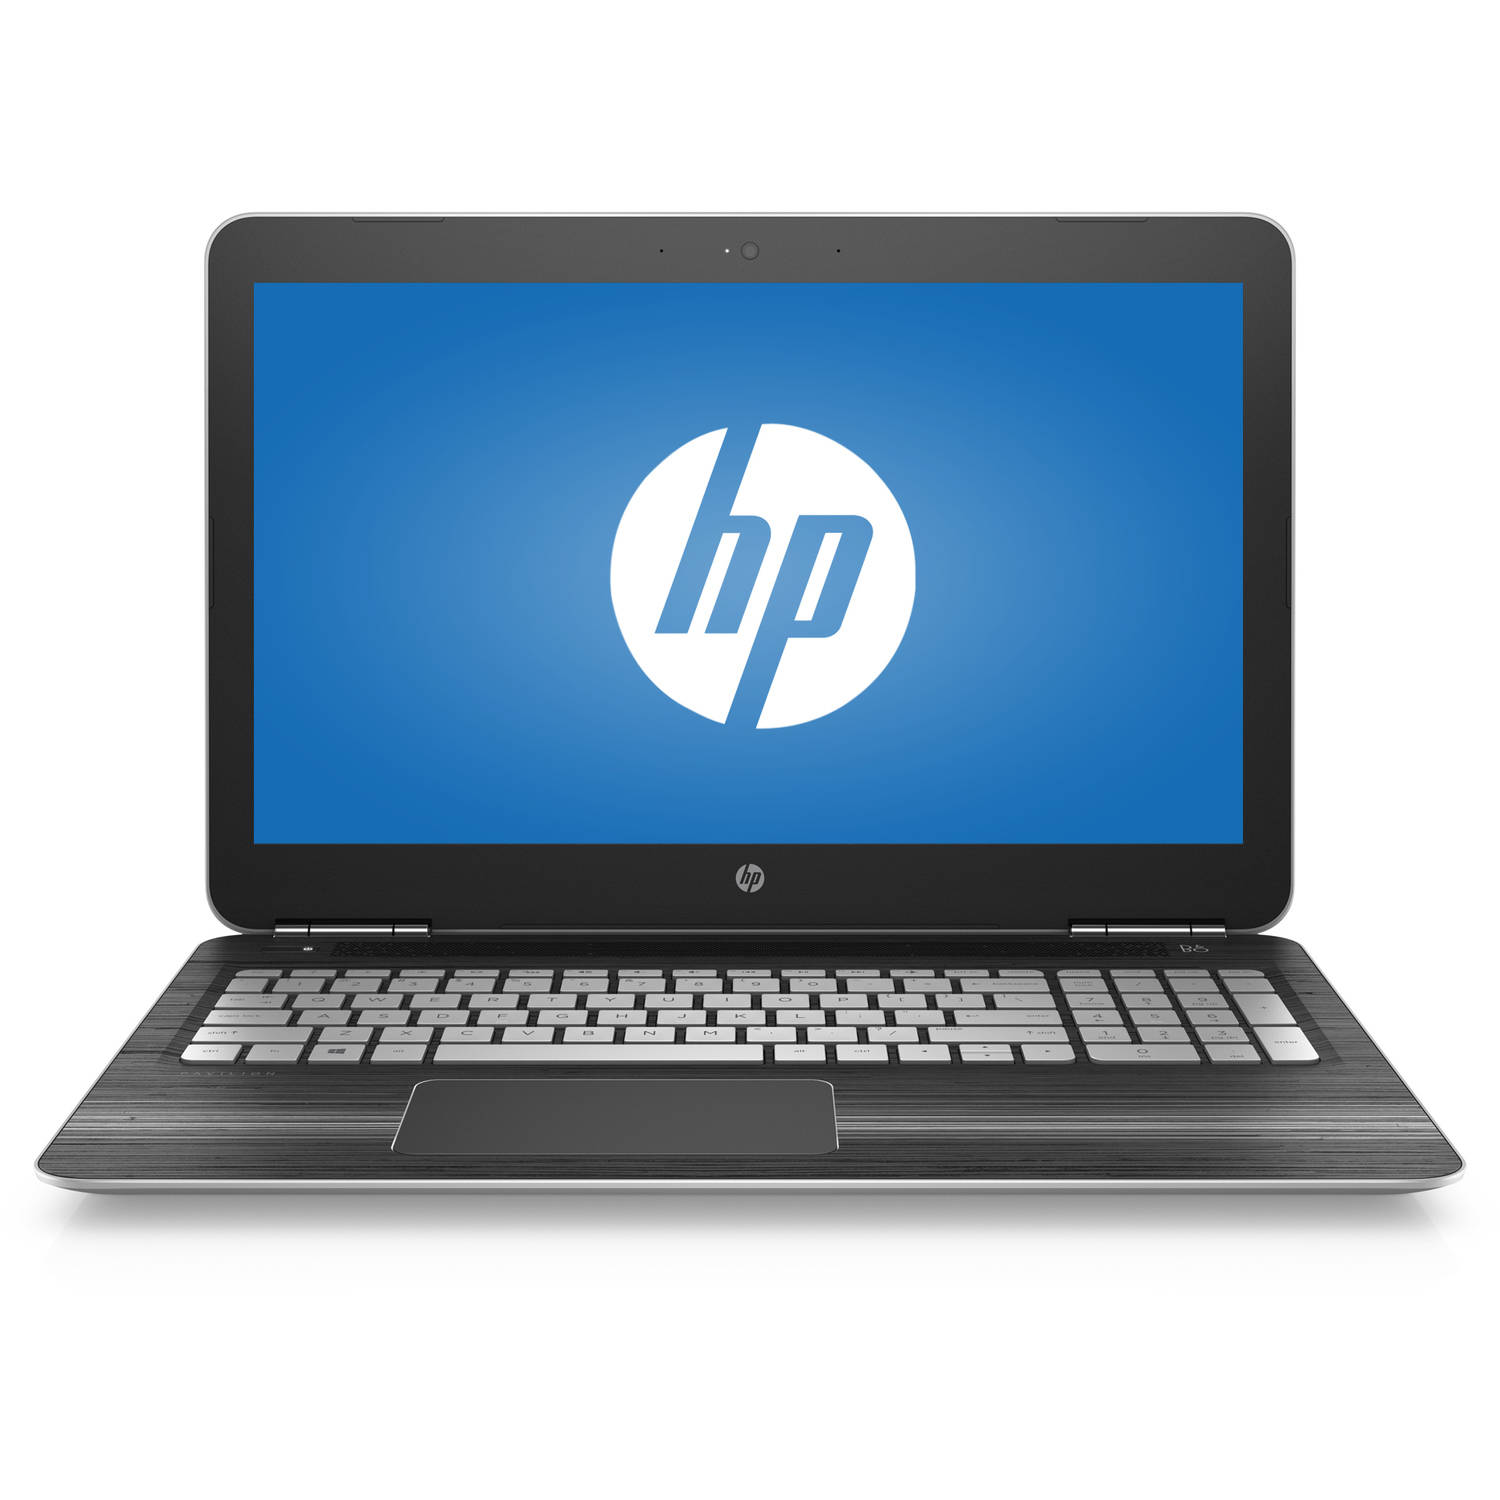 "HP Pavilion 15-bc067nr 15.6"" Laptop, Windows 10 Home, Intel Core i7-6700HQ Processor, 16GB RAM, 1TB Hard Drive"